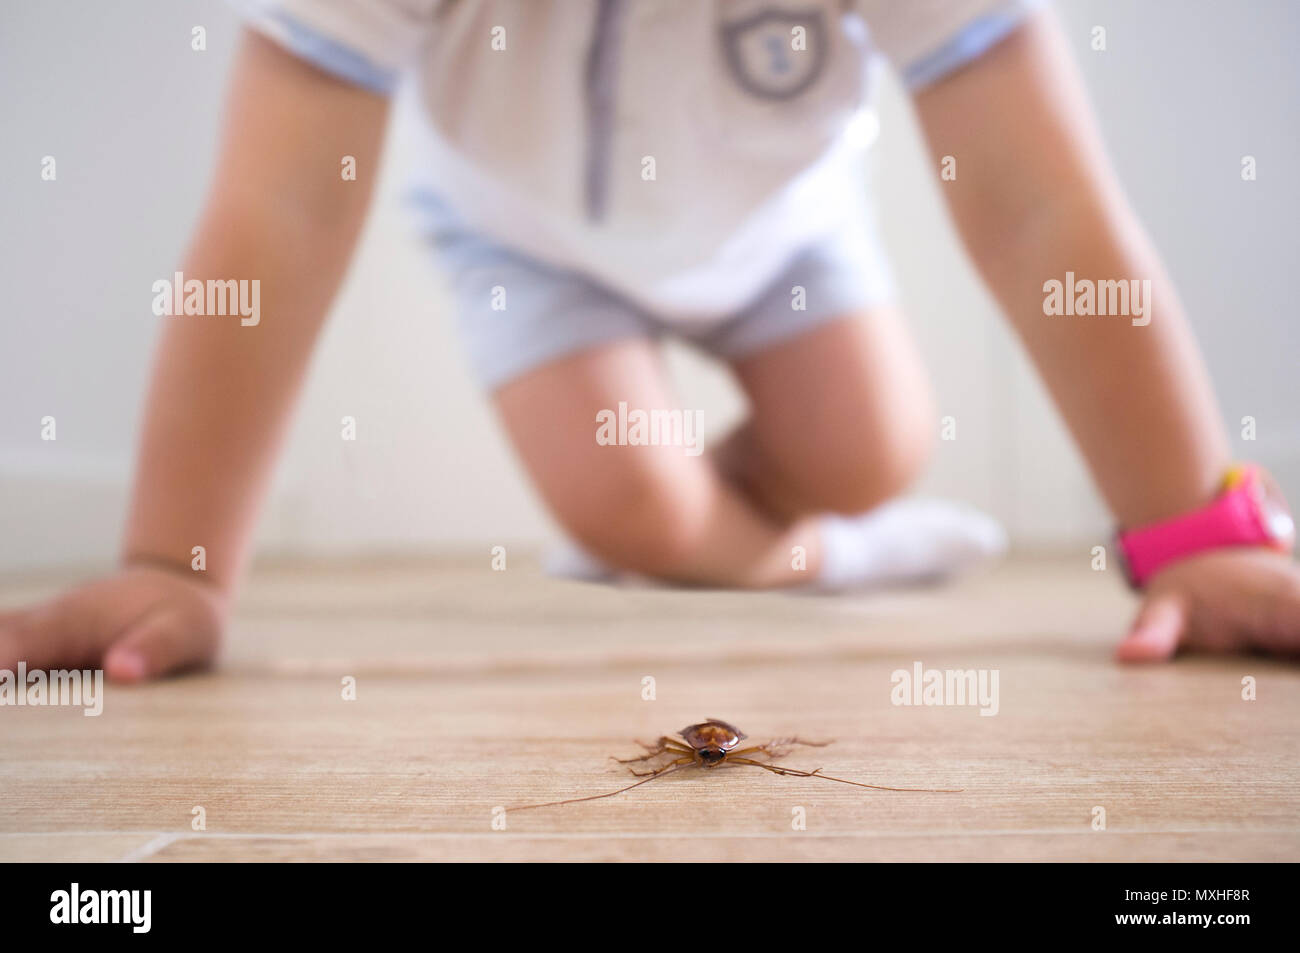 Little boy close to cockroach on the house floor. Pest at home with children concept - Stock Image